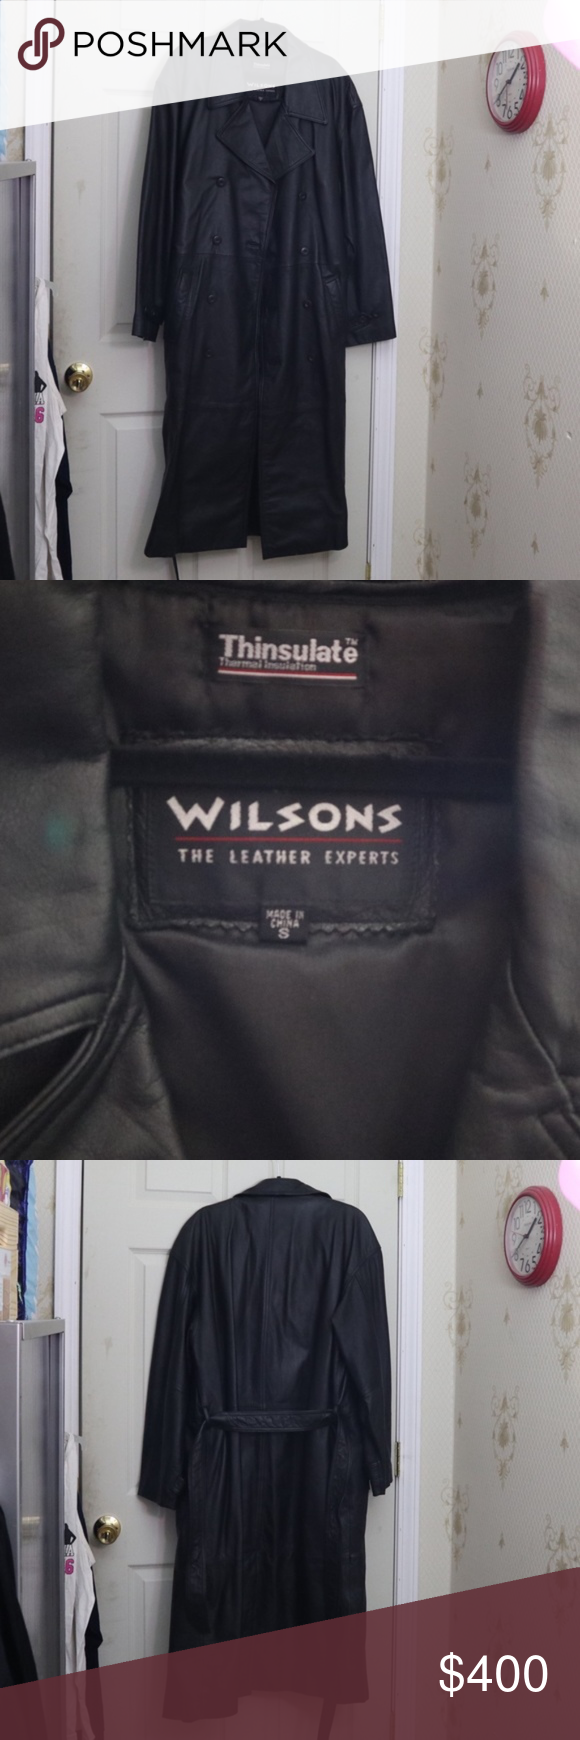 Wilsons Leather Size S Wilsons Leather Size Chart Size S